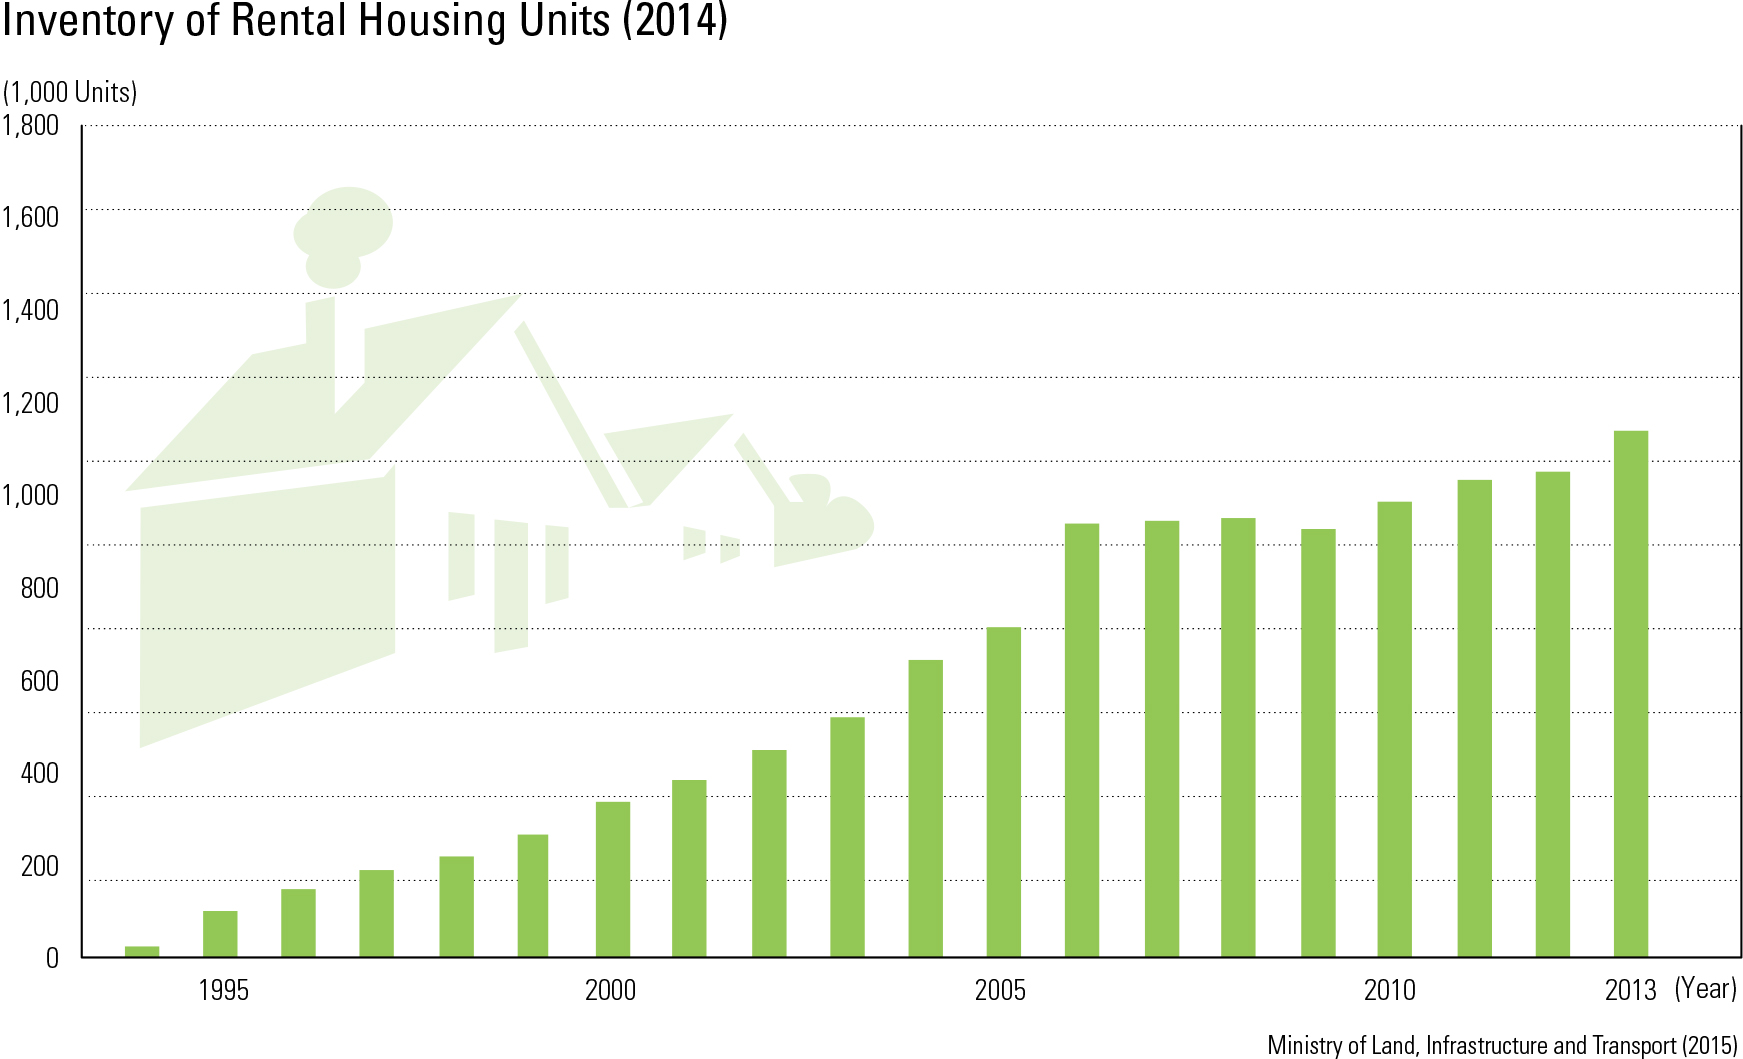 "Inventory of Rental Housing Units (2014)<p class=""oz_zoom"" zimg=""http://imagedata.cafe24.com/us_3/us3_81-2_2.jpg""><span style=""font-family:Nanum Myeongjo;""><span style=""font-size:18px;""><span class=""label label-danger"">UPDATE DATA</span></span></p>"